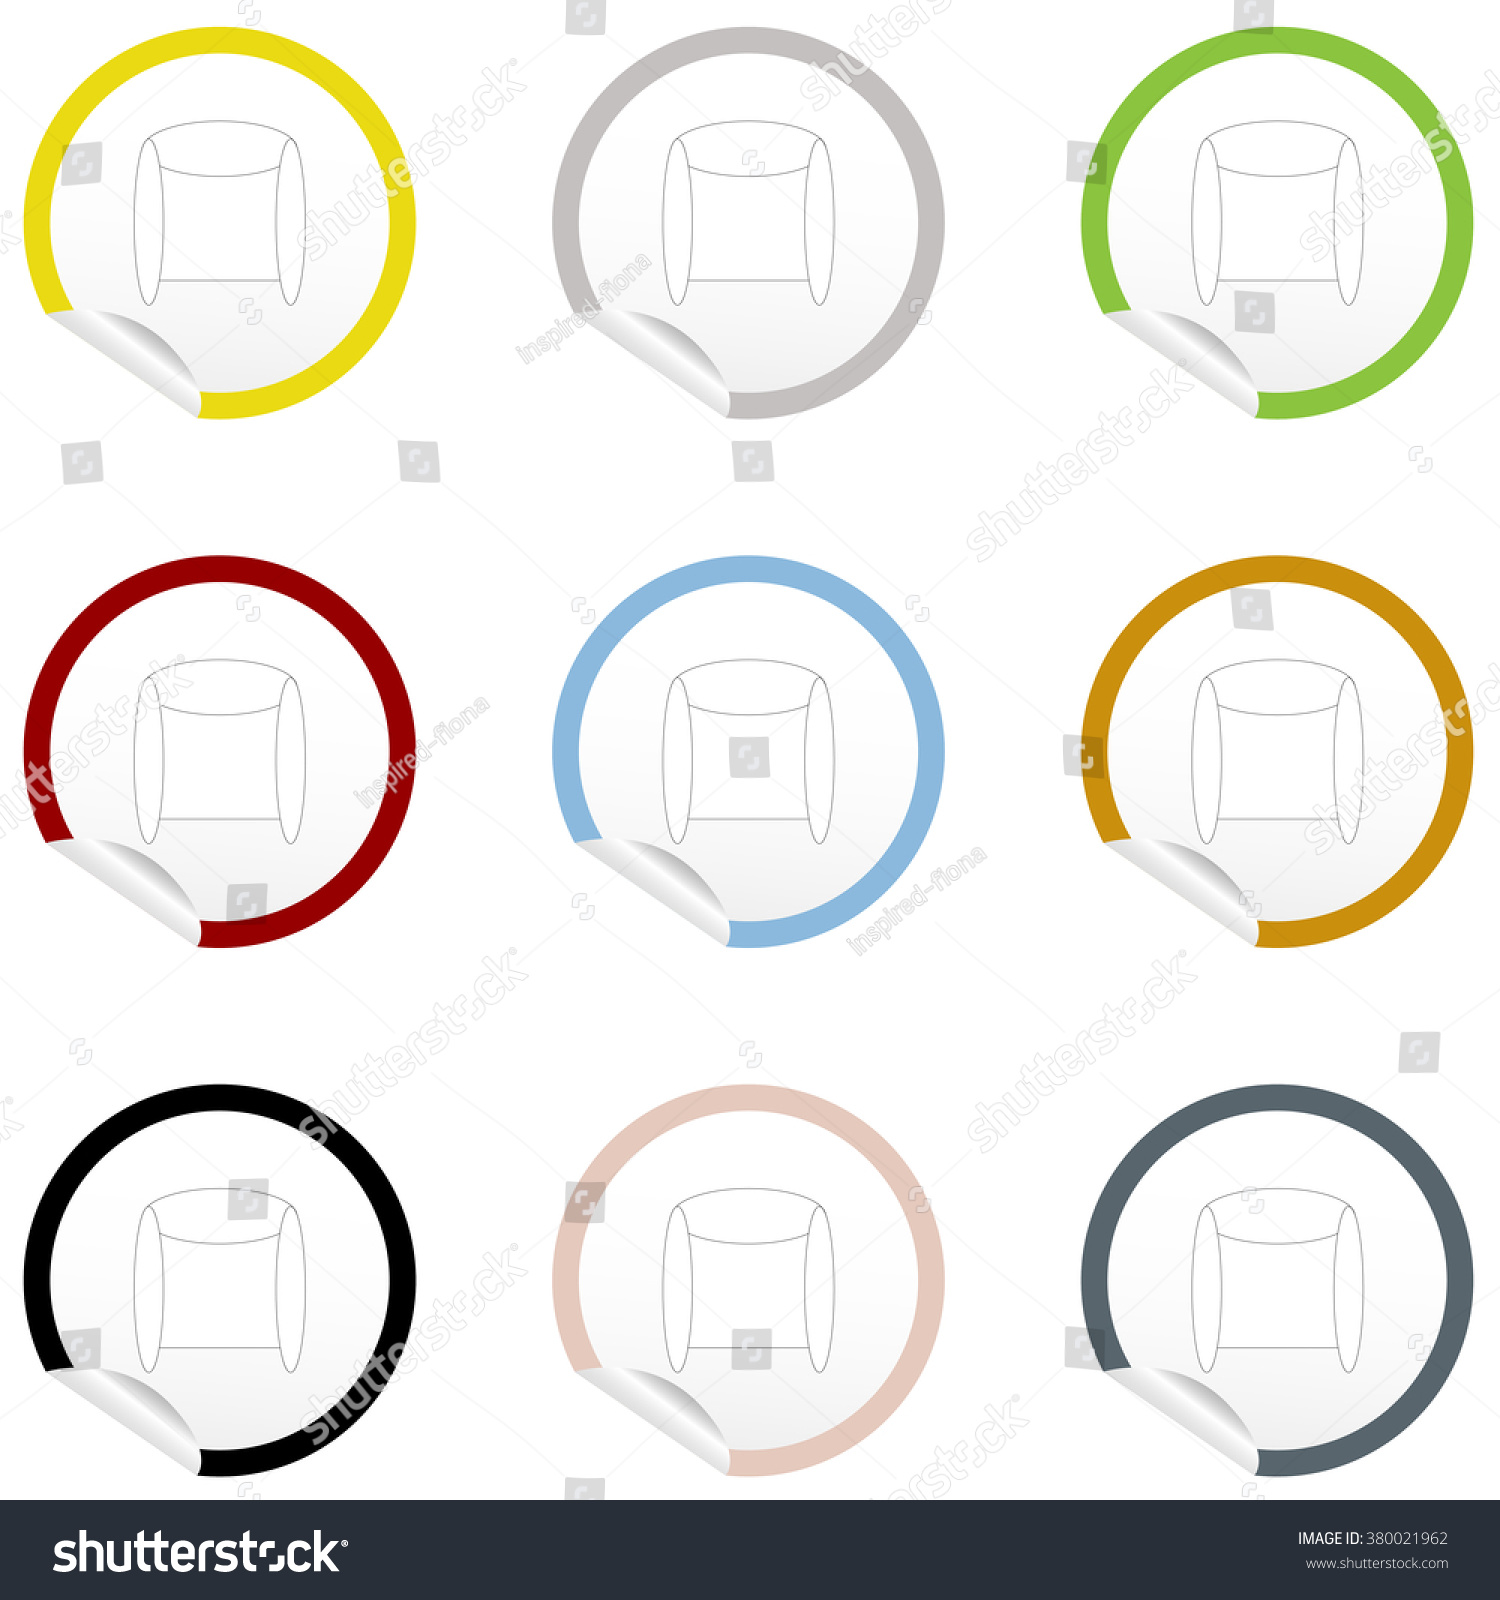 flat chair icon on sticker floor stock vector 380021962 shutterstock flat chair icon on sticker for floor plan outline eps10 vector furniture illustration view